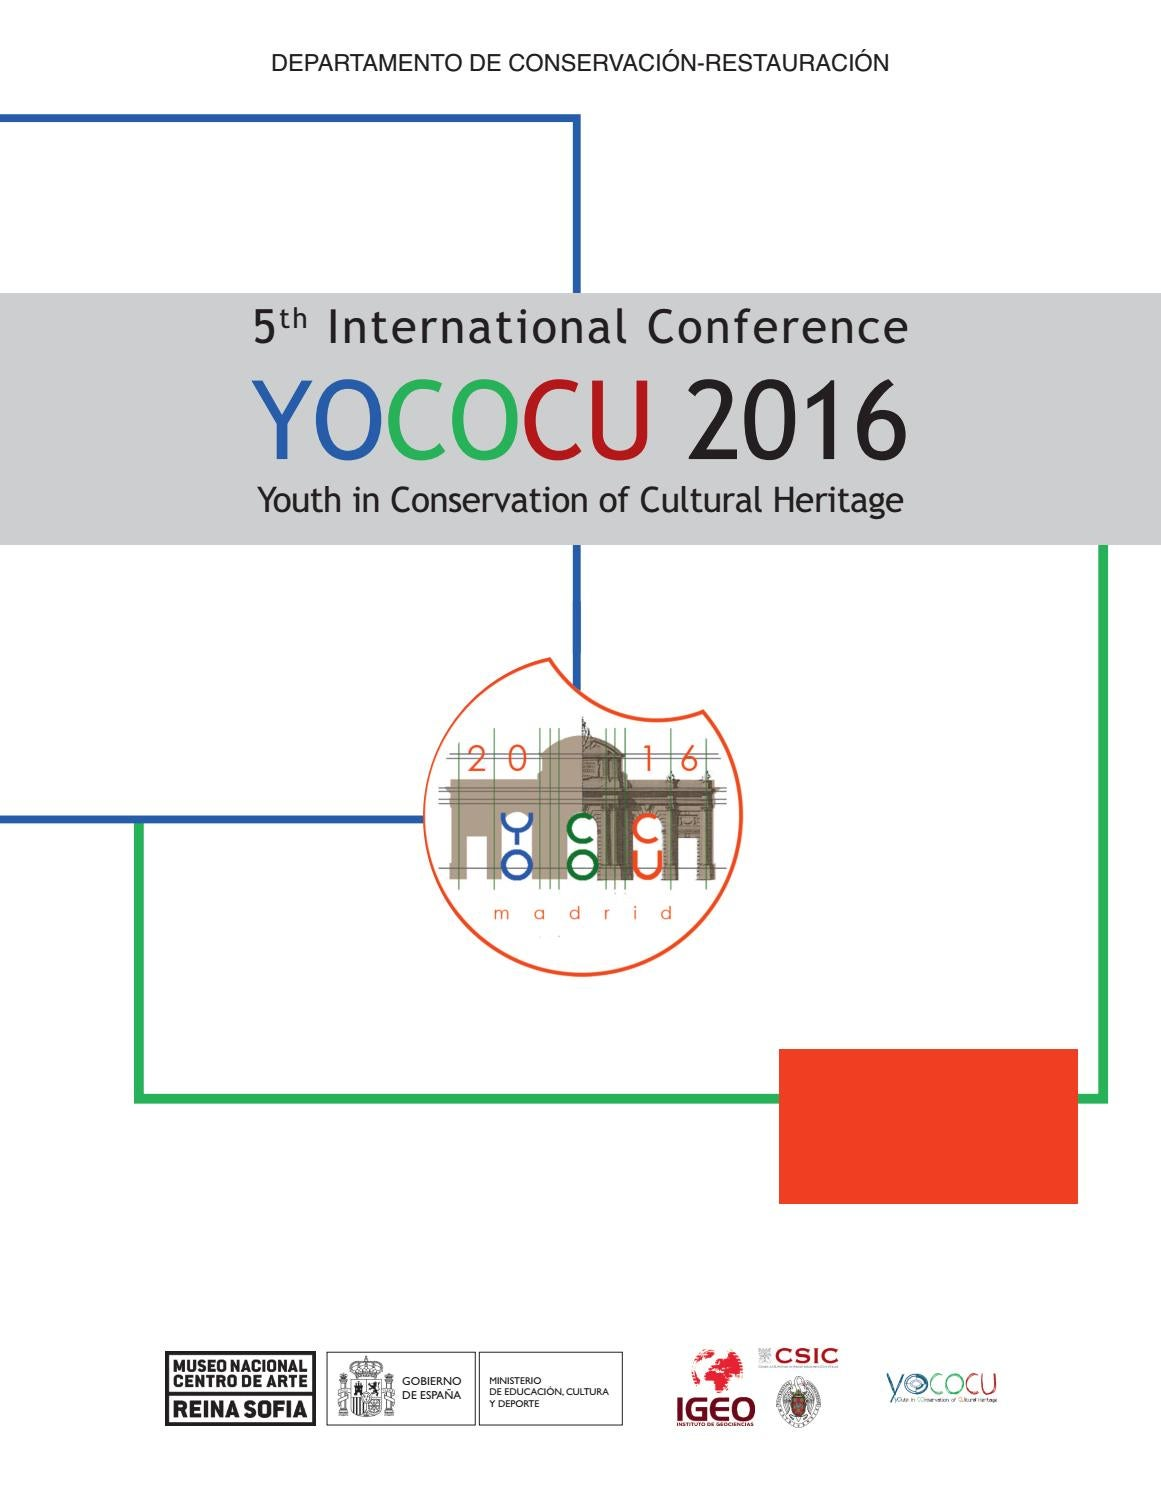 hight resolution of 5th international conference yococu 2016 youth in conservation of cultural heritage